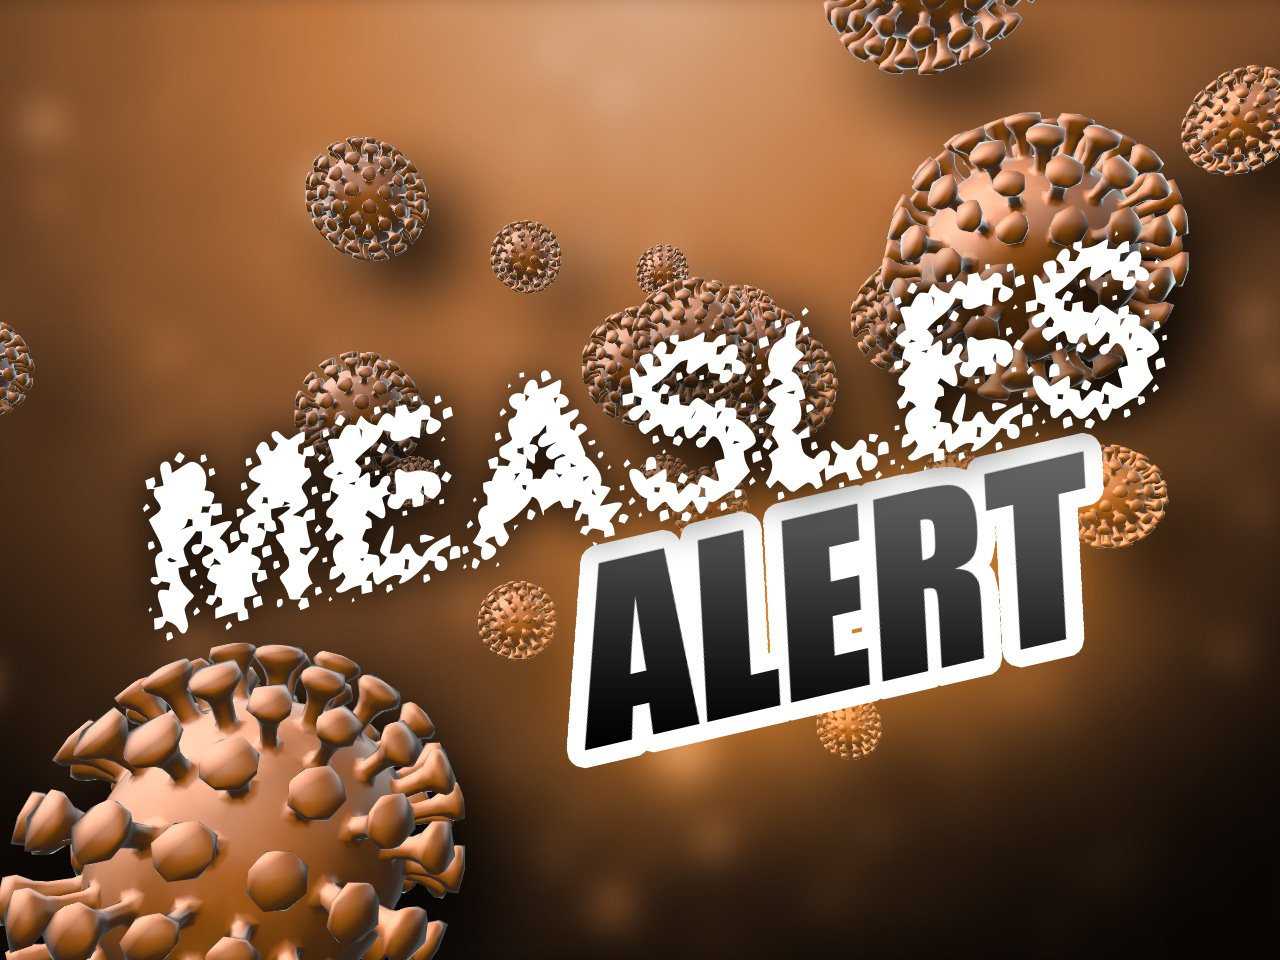 ri health department warns of possible measles outbreak - abc6